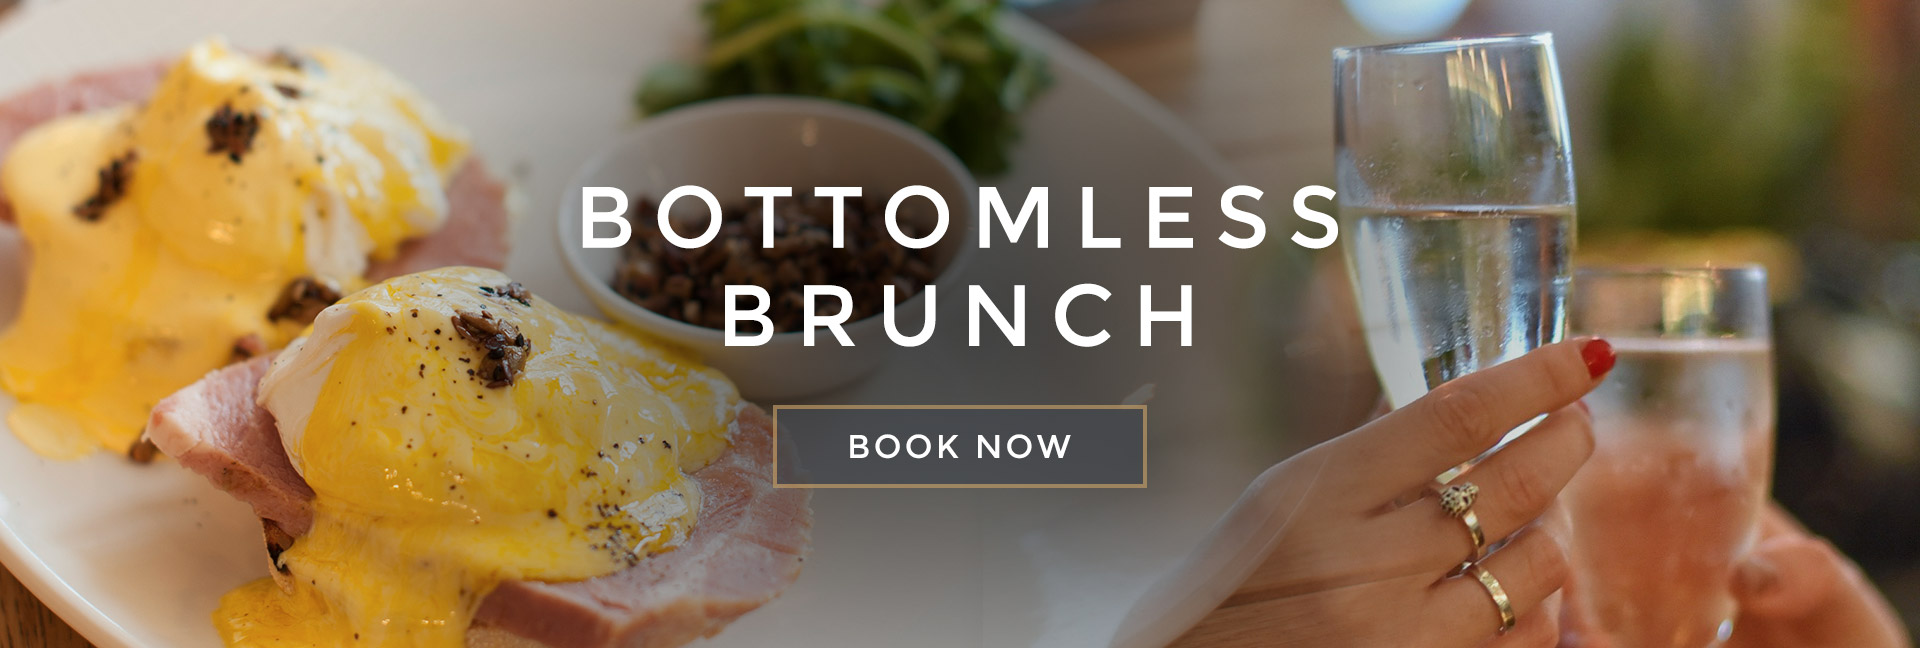 Bottomless Brunch at All Bar One Portsmouth - Book now